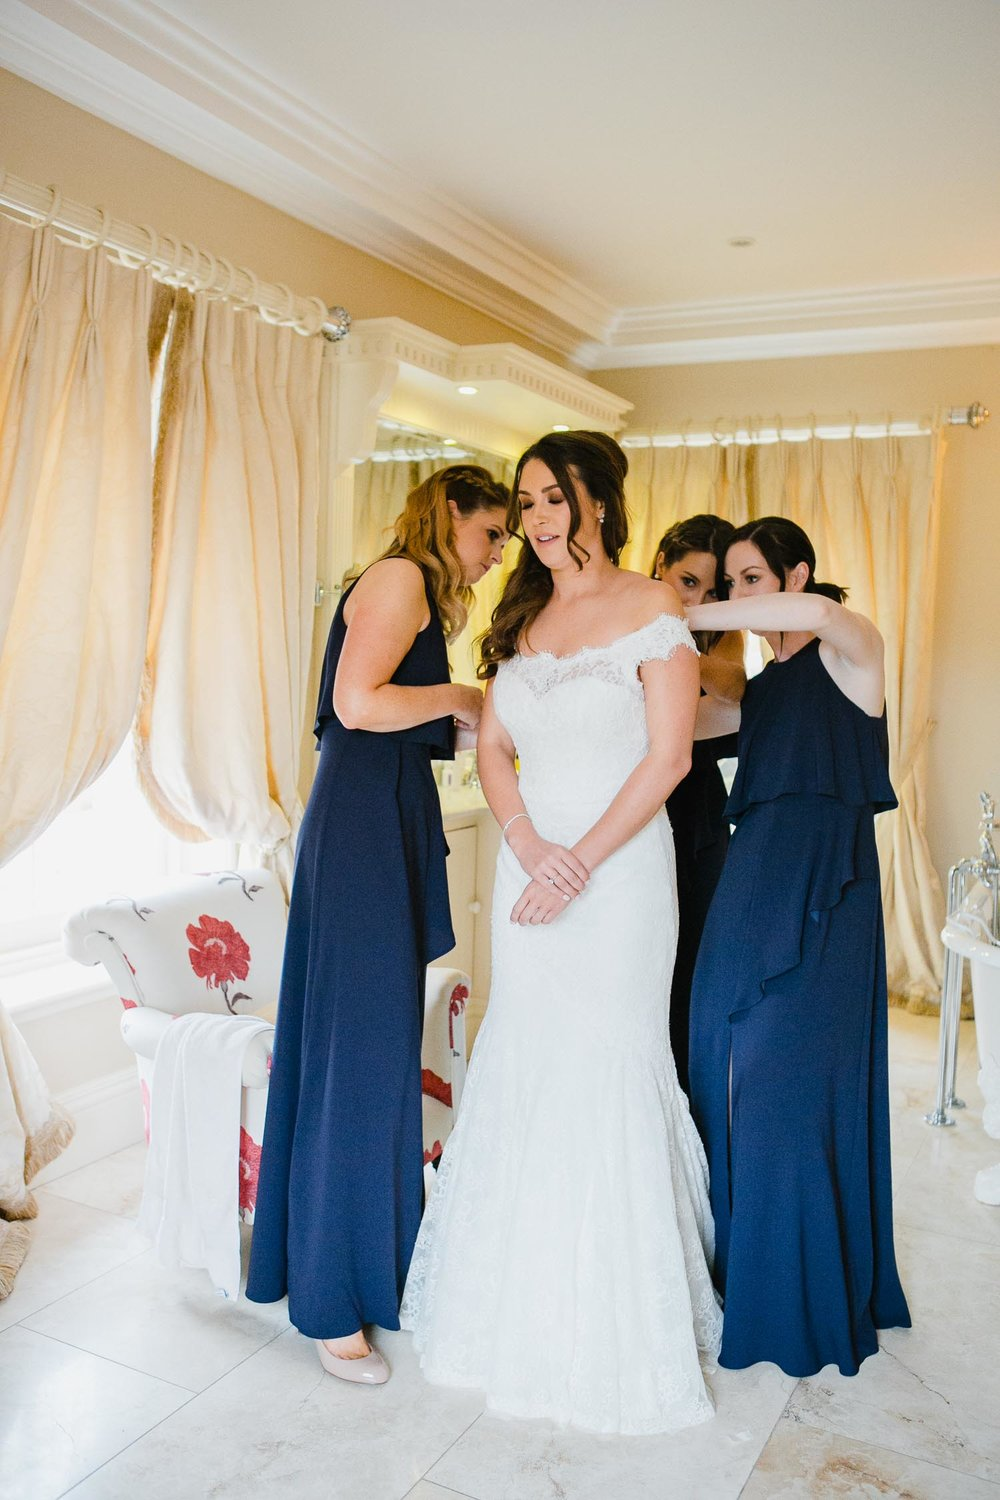 Bridal Suite Tankardstown House Wedding Photo